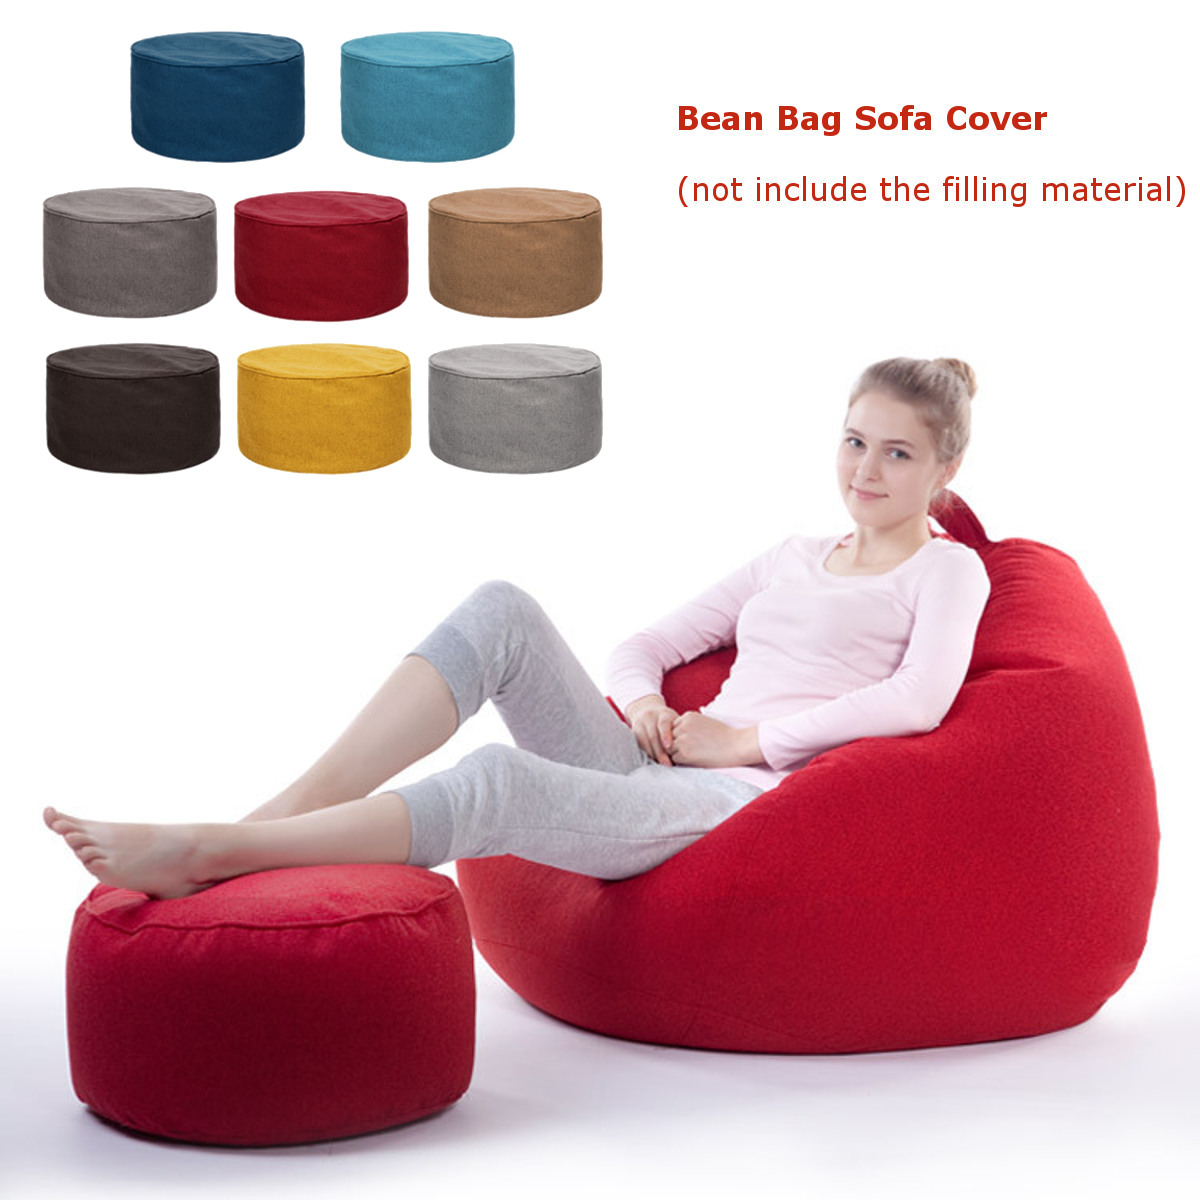 Cotton Footstool Cover Home Sofa Round Stool Bean Bags Sofa Lounger Cover Soft Washable Without Filler For Living Room Table